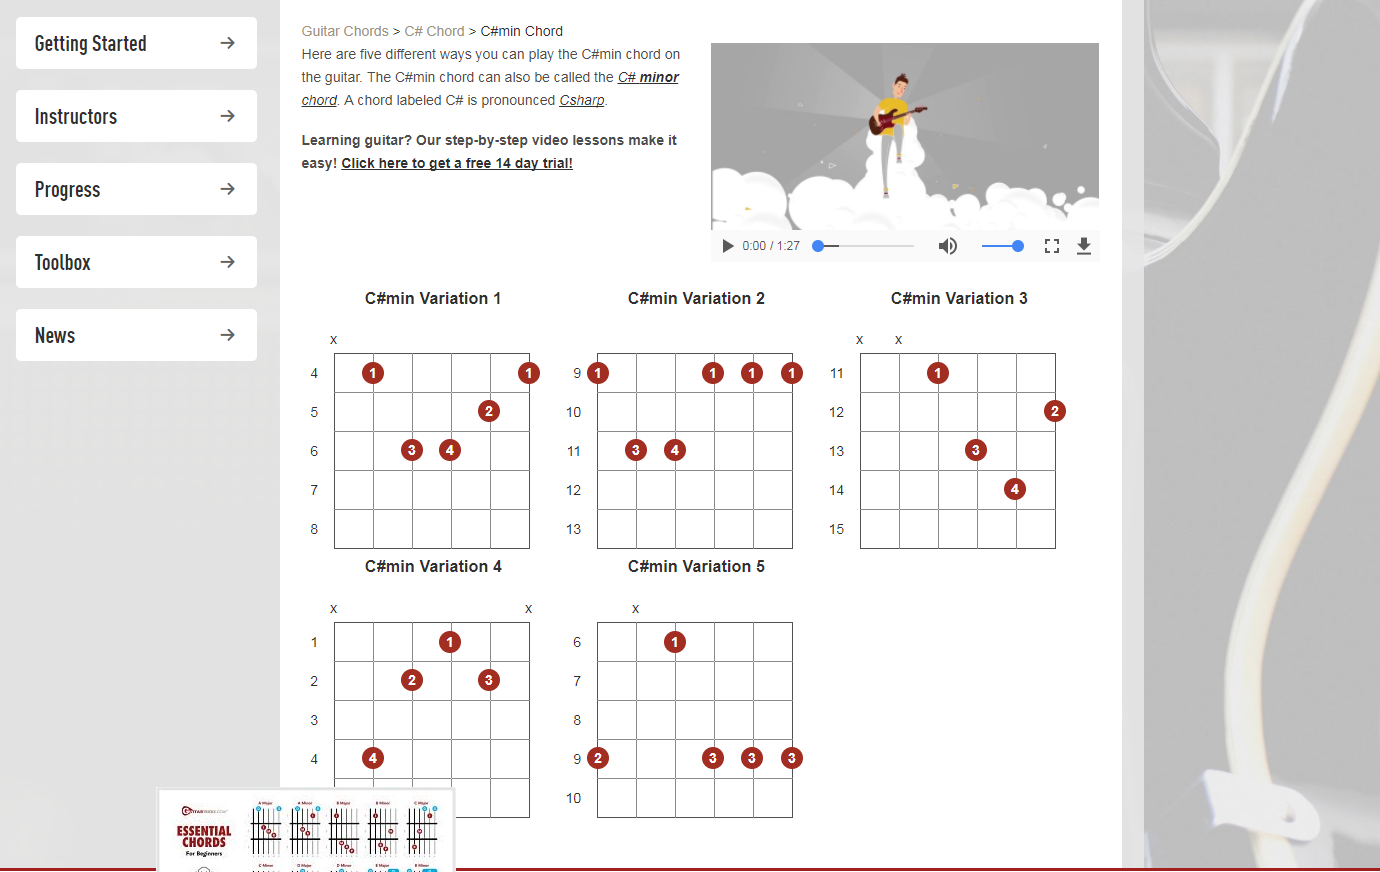 C sharp minor chord lesson and primer guitar chalk guitar tricks c sharp minor chord diagrams hexwebz Choice Image